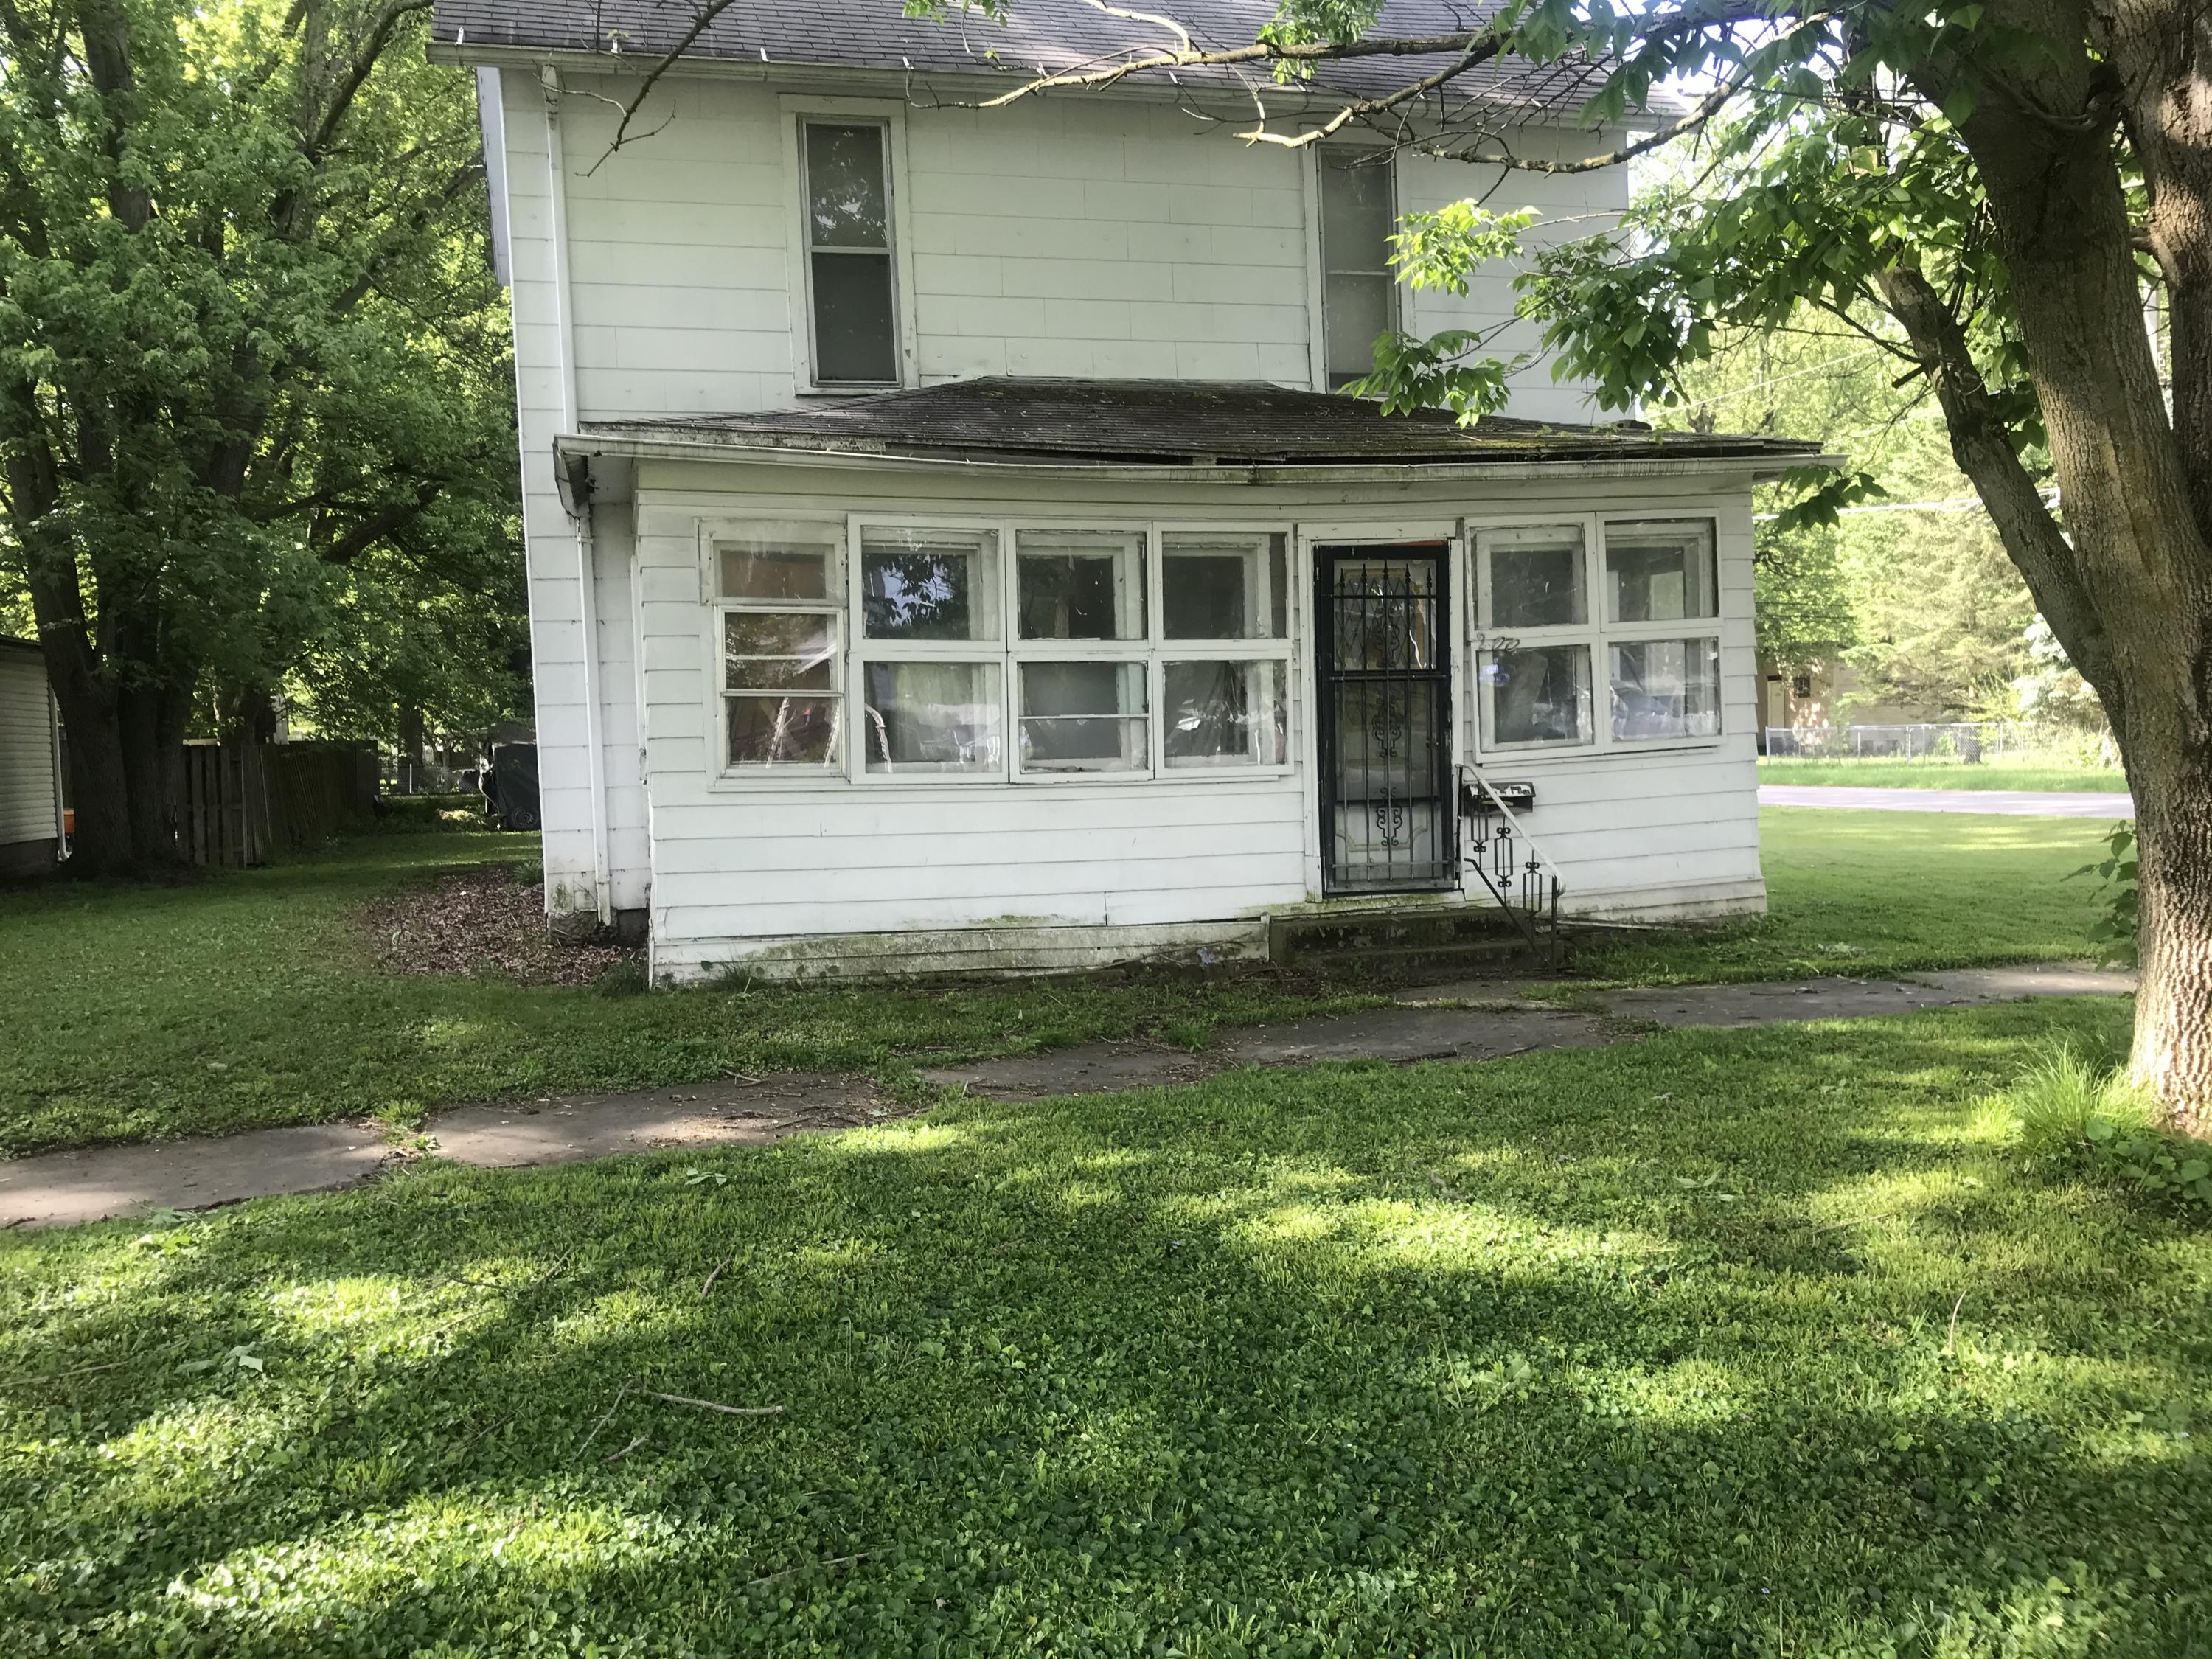 Photo 2 for 200 E Blagrove St Richwood, OH 43344